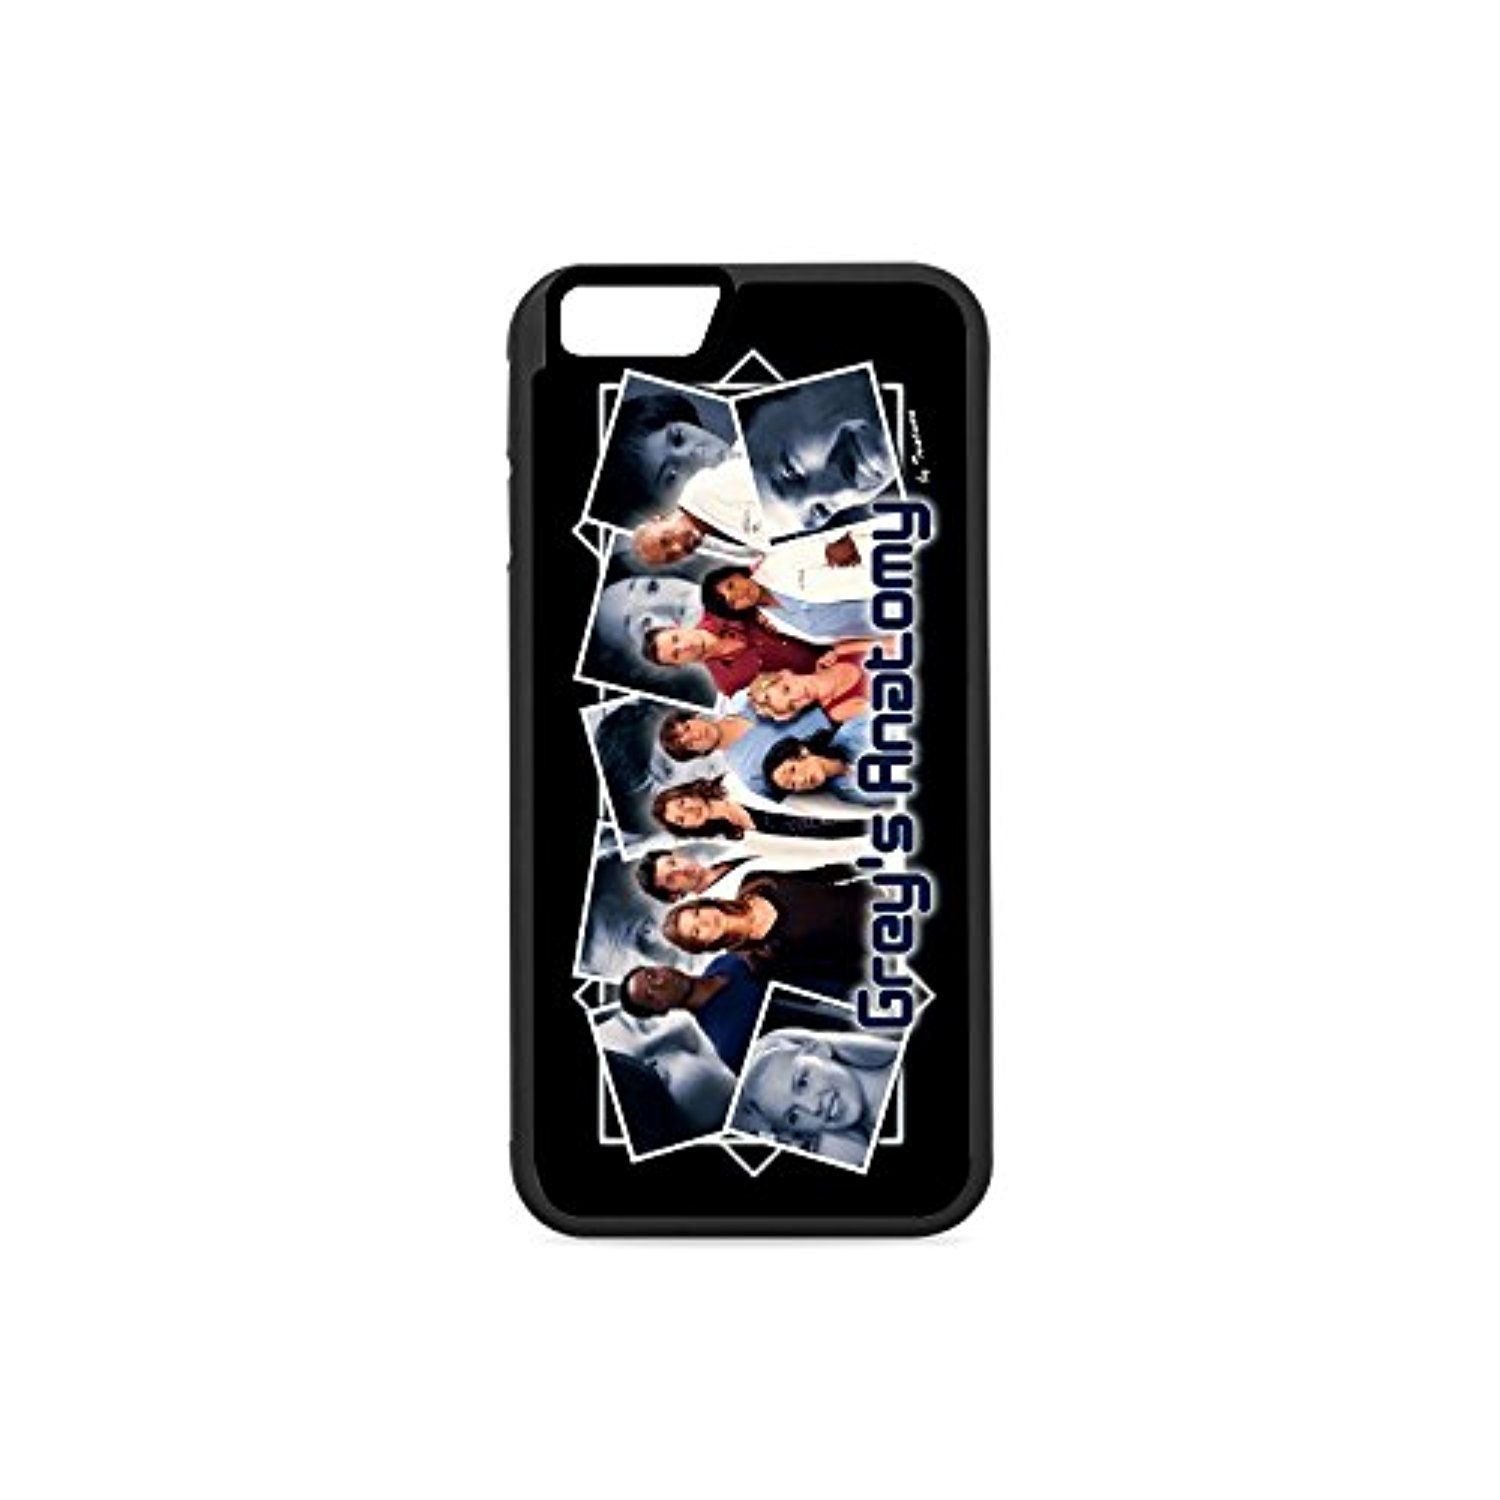 DreamOffice Custom Case for iPhone 6 and iPhone 6s,Grey's Anatomy iPhone 6/6s Hard Rubber Sides Slim Case,Light weight,Daurable-148 -- Awesome products selected by Anna Churchill